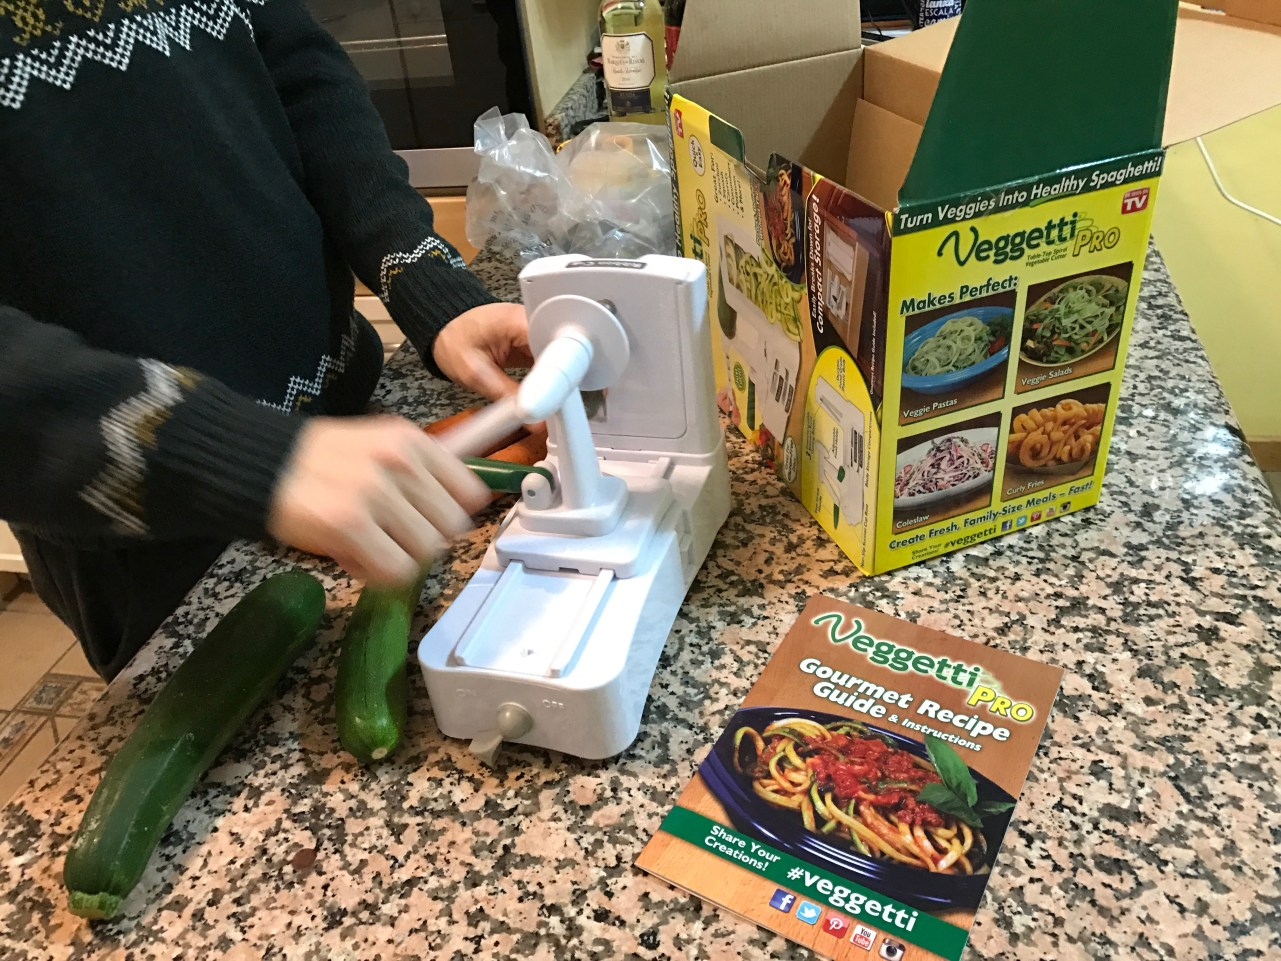 Unboxing the Veggetti Pro